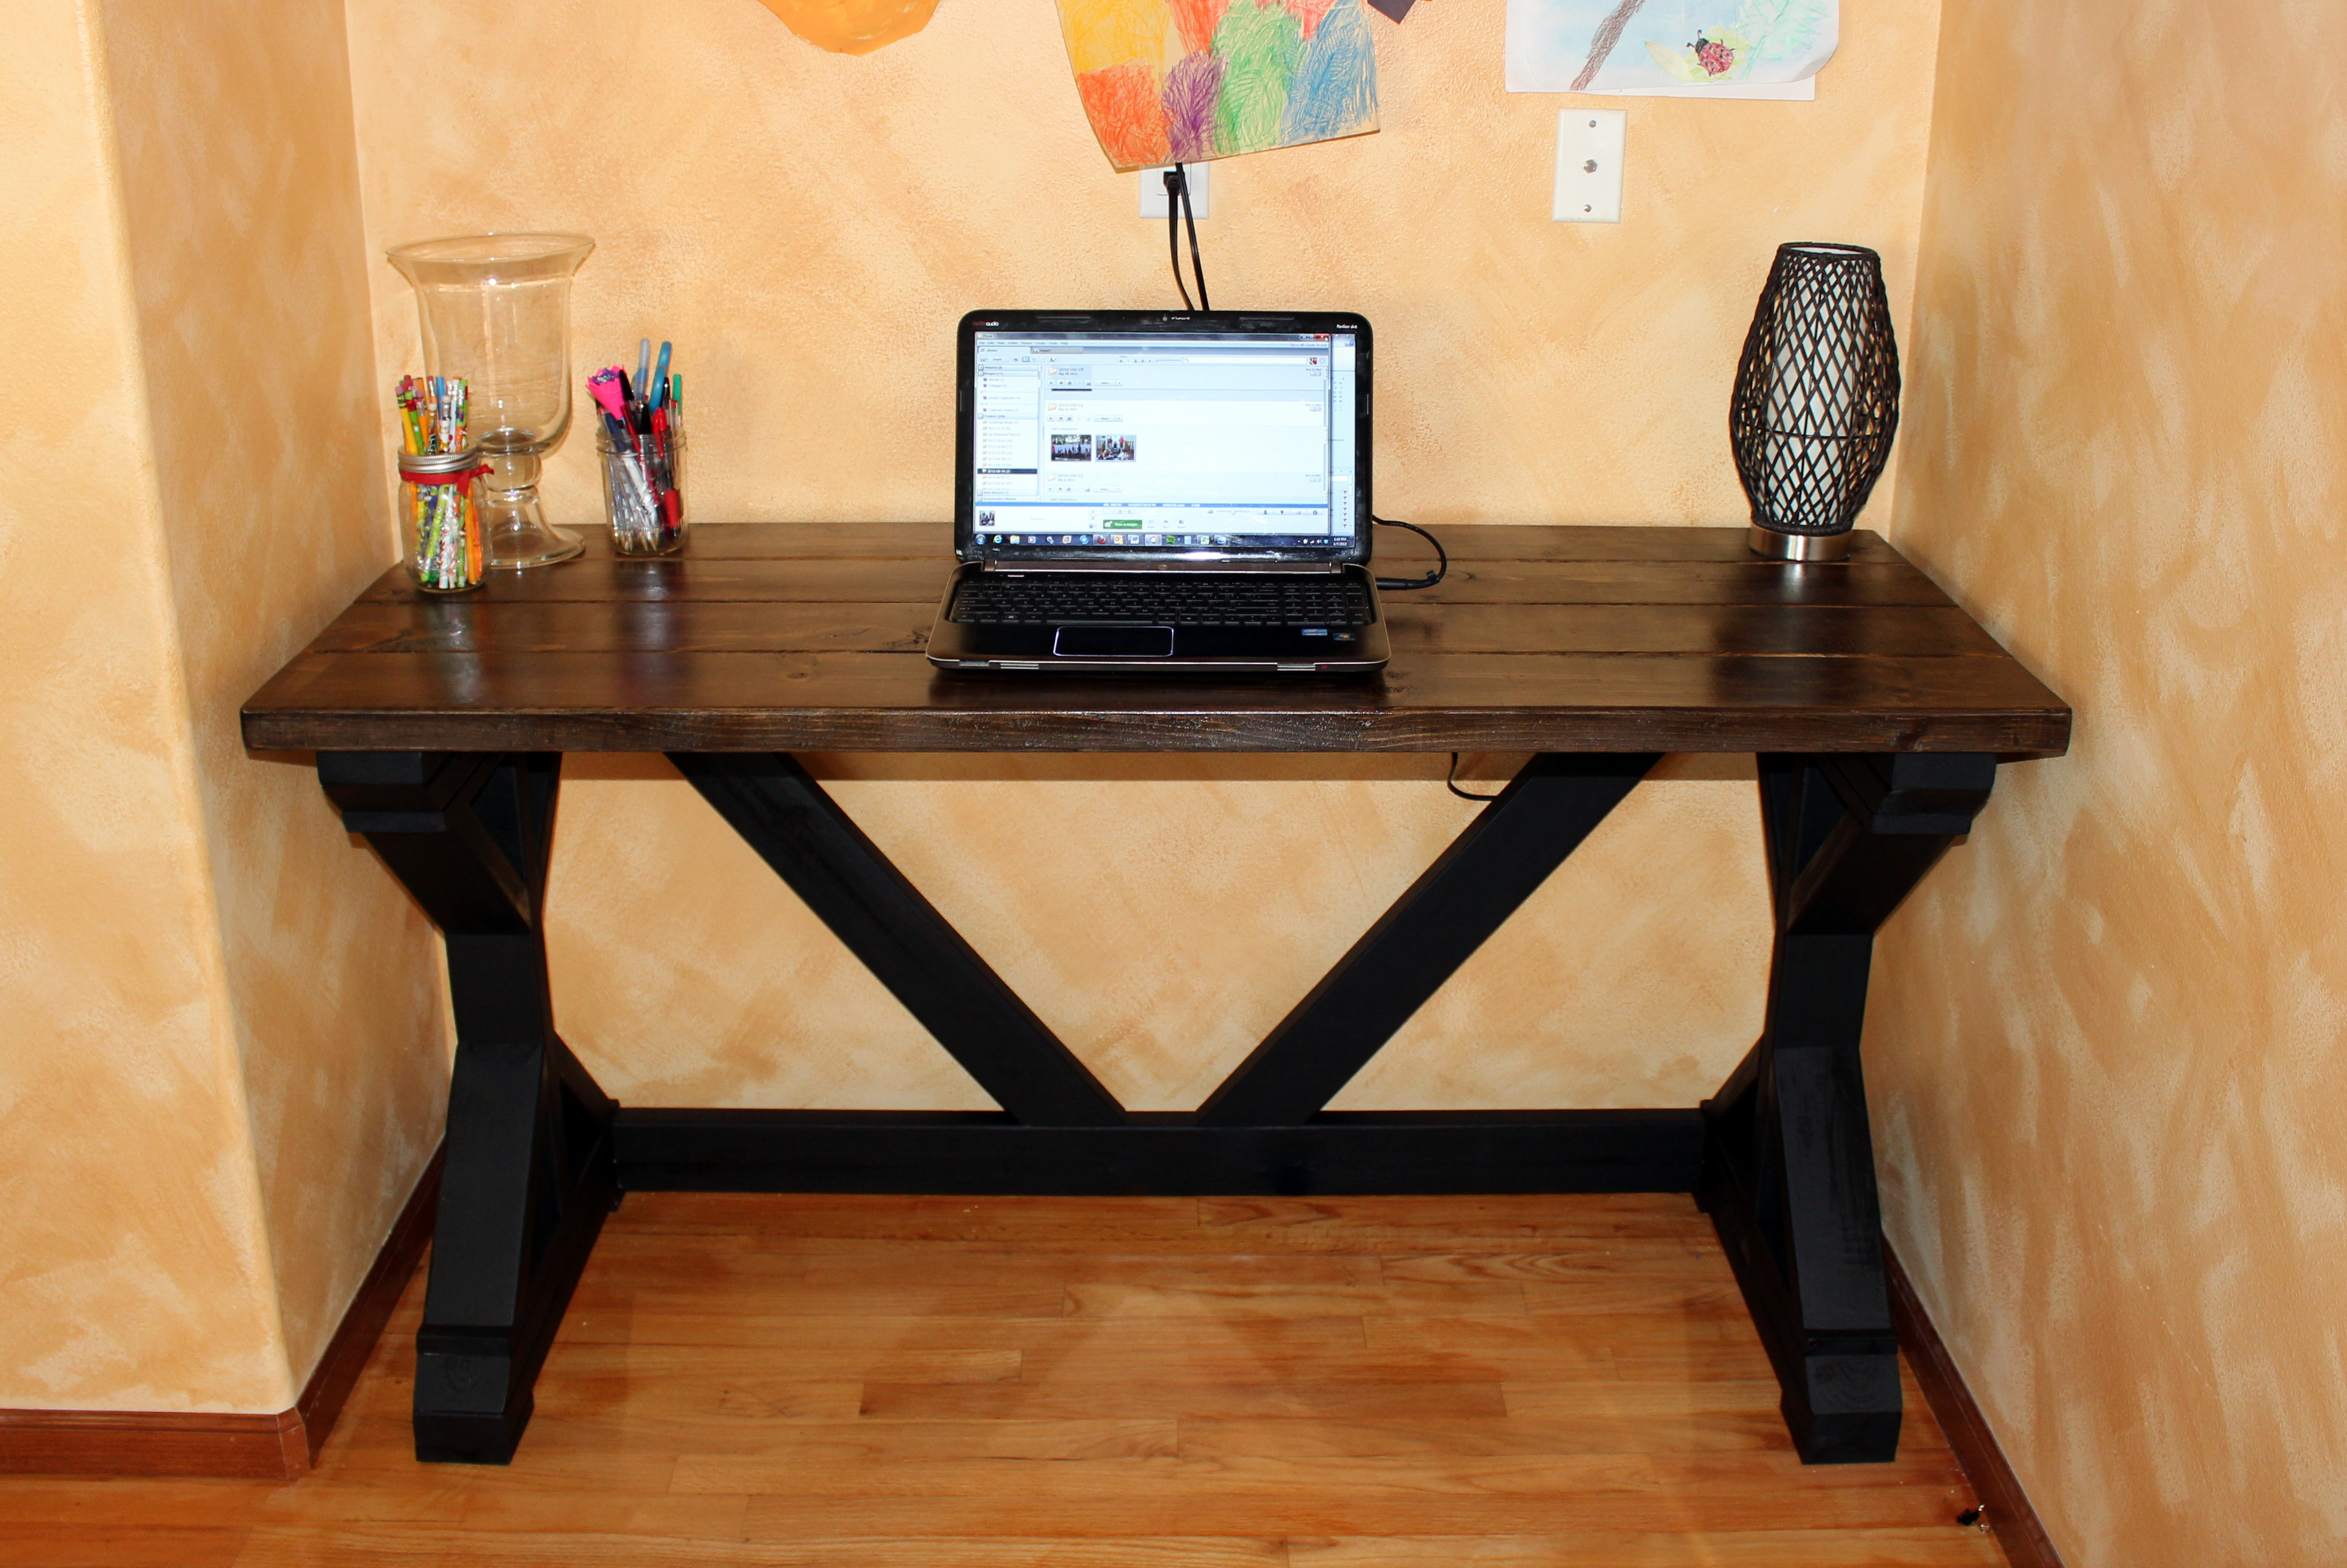 Fancy Desk Ana White  My First Build  The $55 Fancy X Desk  Diy Projects